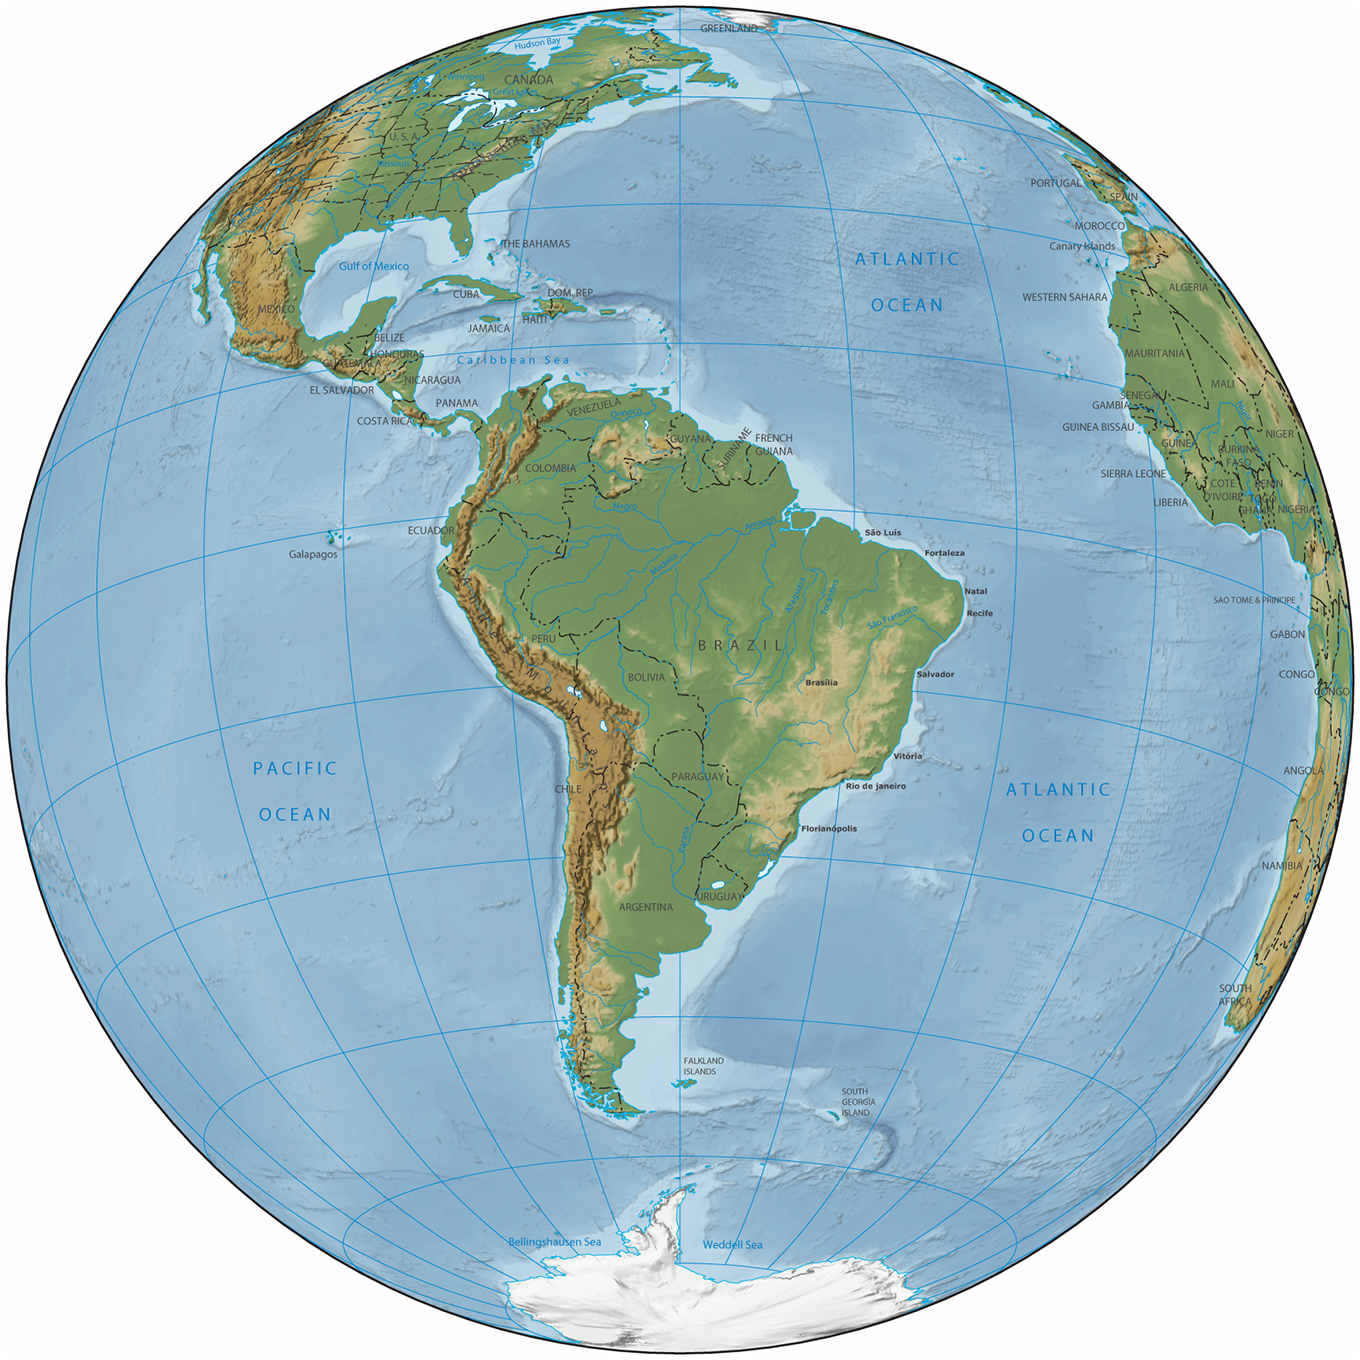 South America Map on haiti map, mexico map, italy map, australia map, india map, belize map, panama map, croatia map, africa map, uruguay map, morocco map, asia map, ecuador map, western hemisphere map, europe map, middle east map, zimbabwe map, spain map, costa rica map, argentina map,